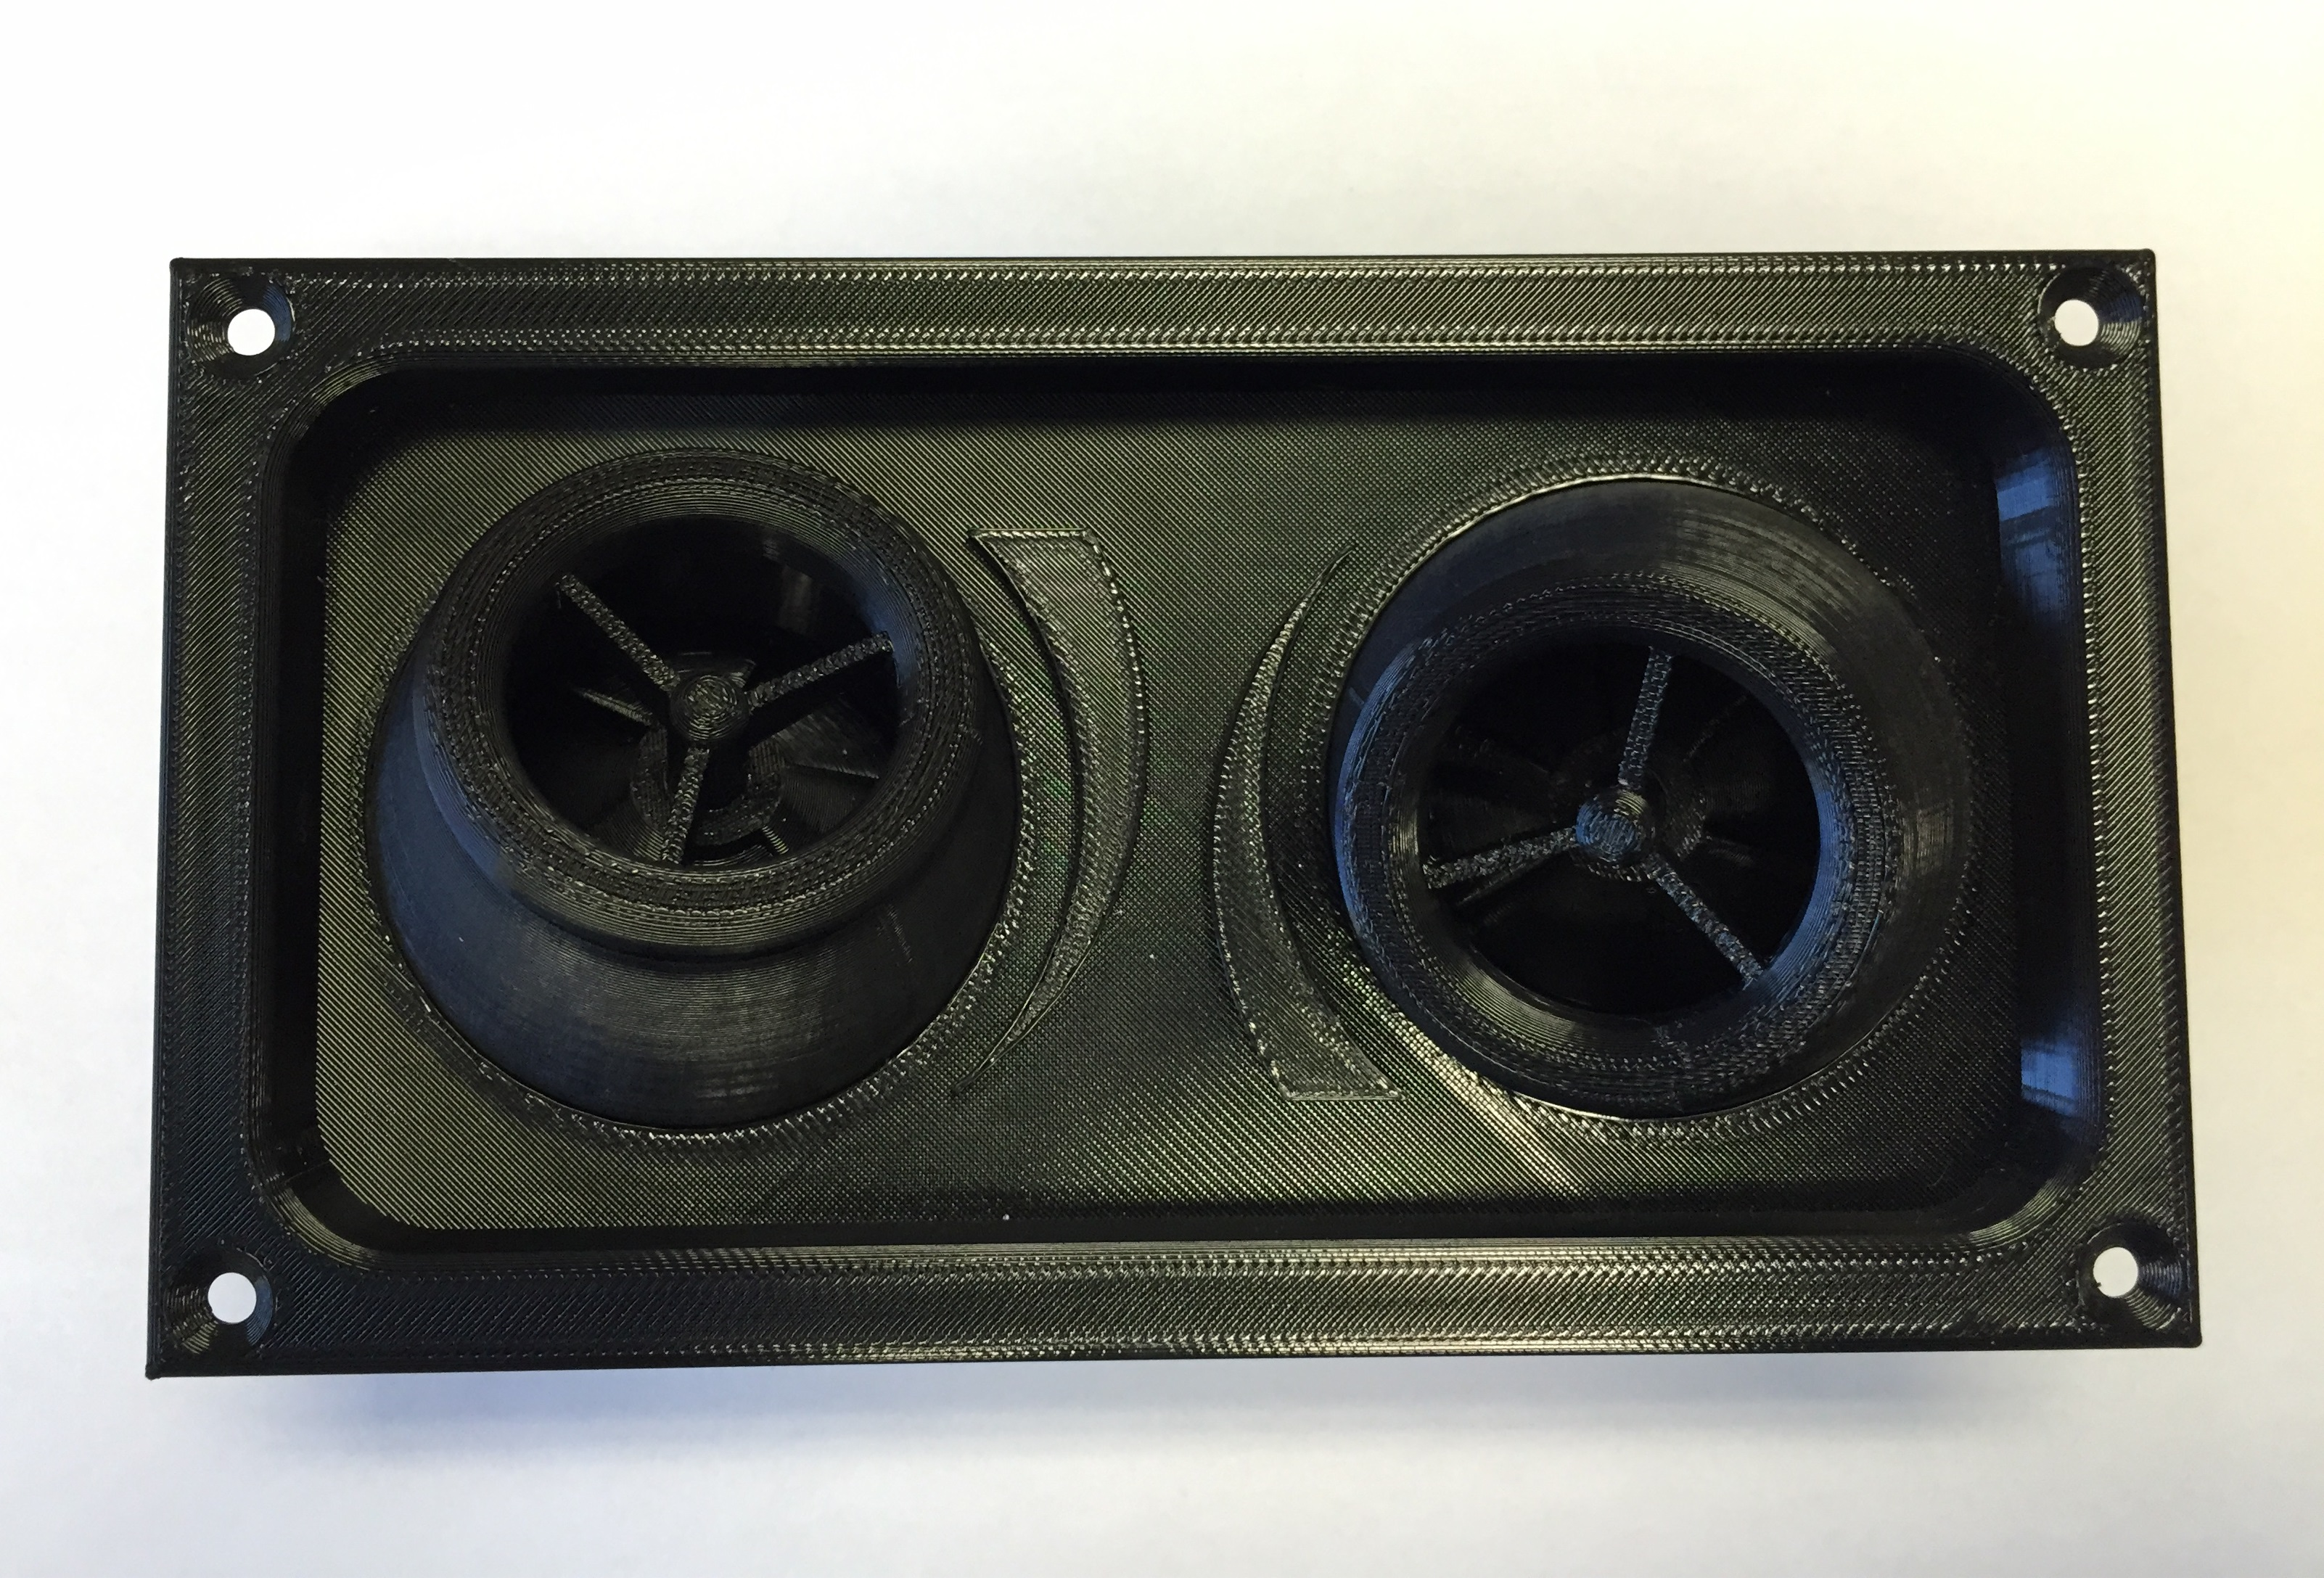 3D printed air vent for LRT transportation. Made out of ULTEM 9085.